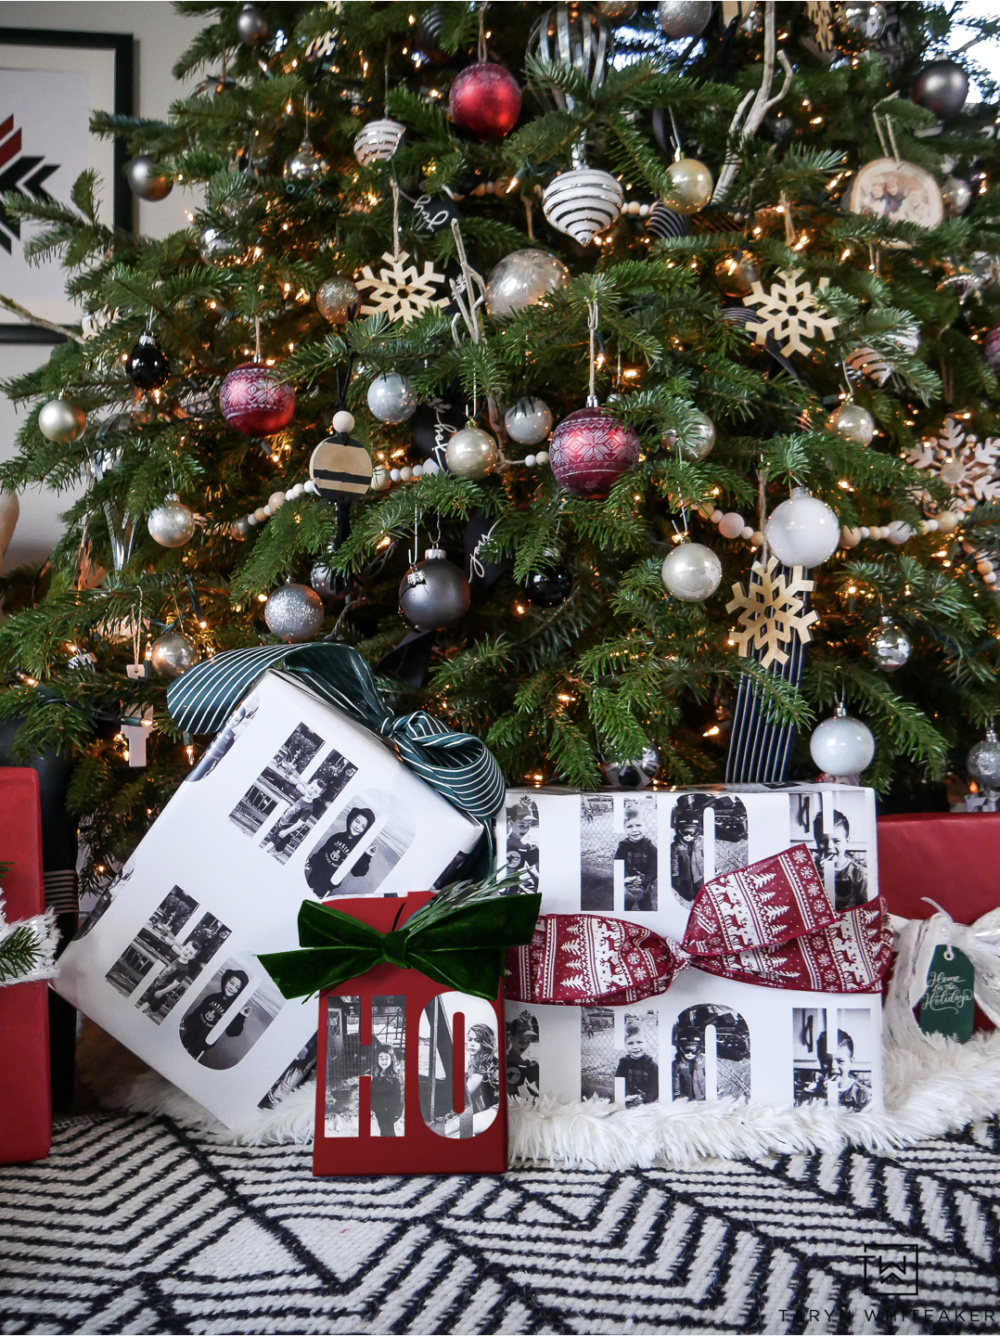 Create special holiday memories with your family by creating personalized Christmas wrapping paper using your favorite family photos from throughout the year!